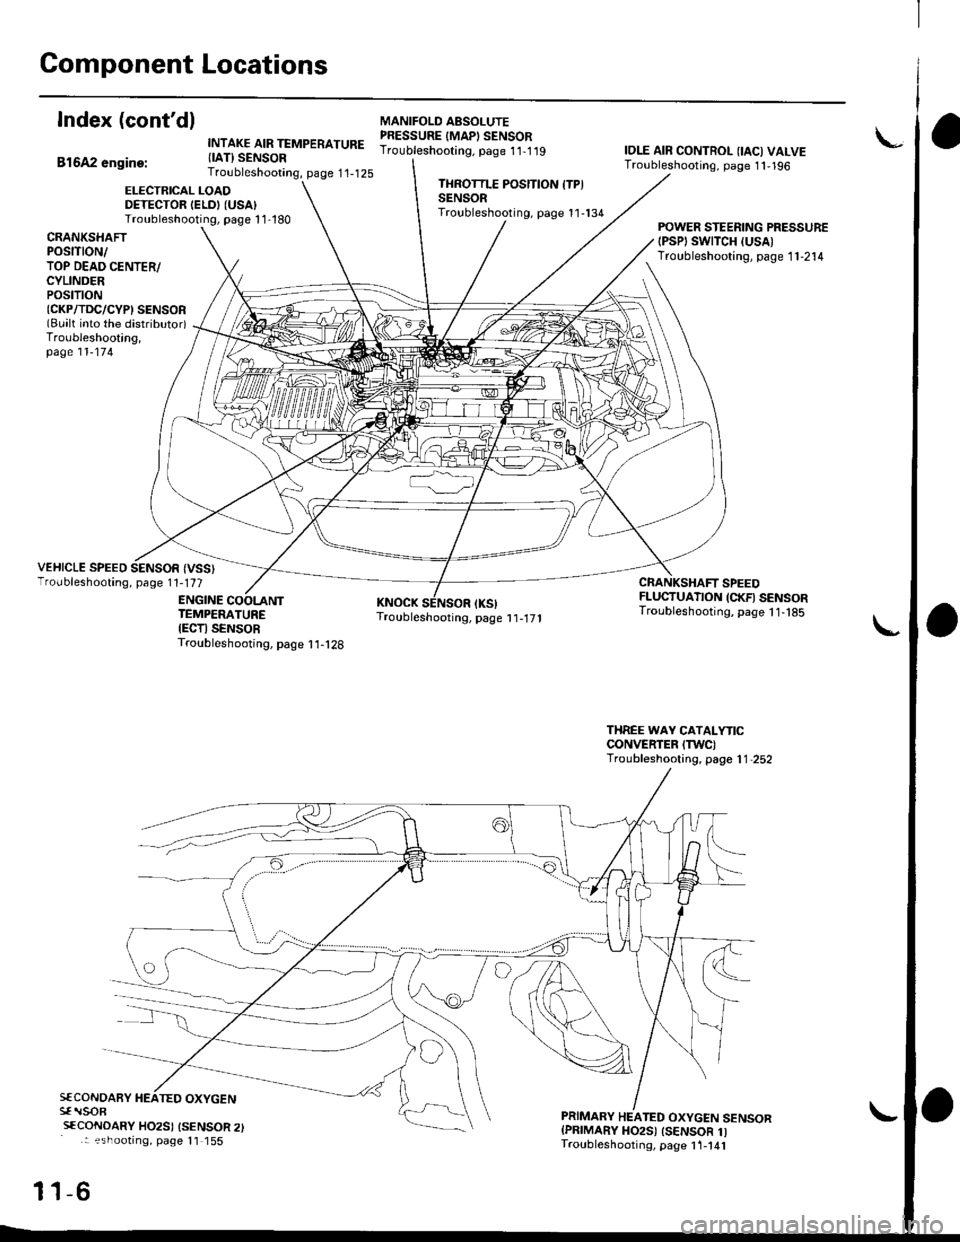 1993 ford tempo fuse box diagram